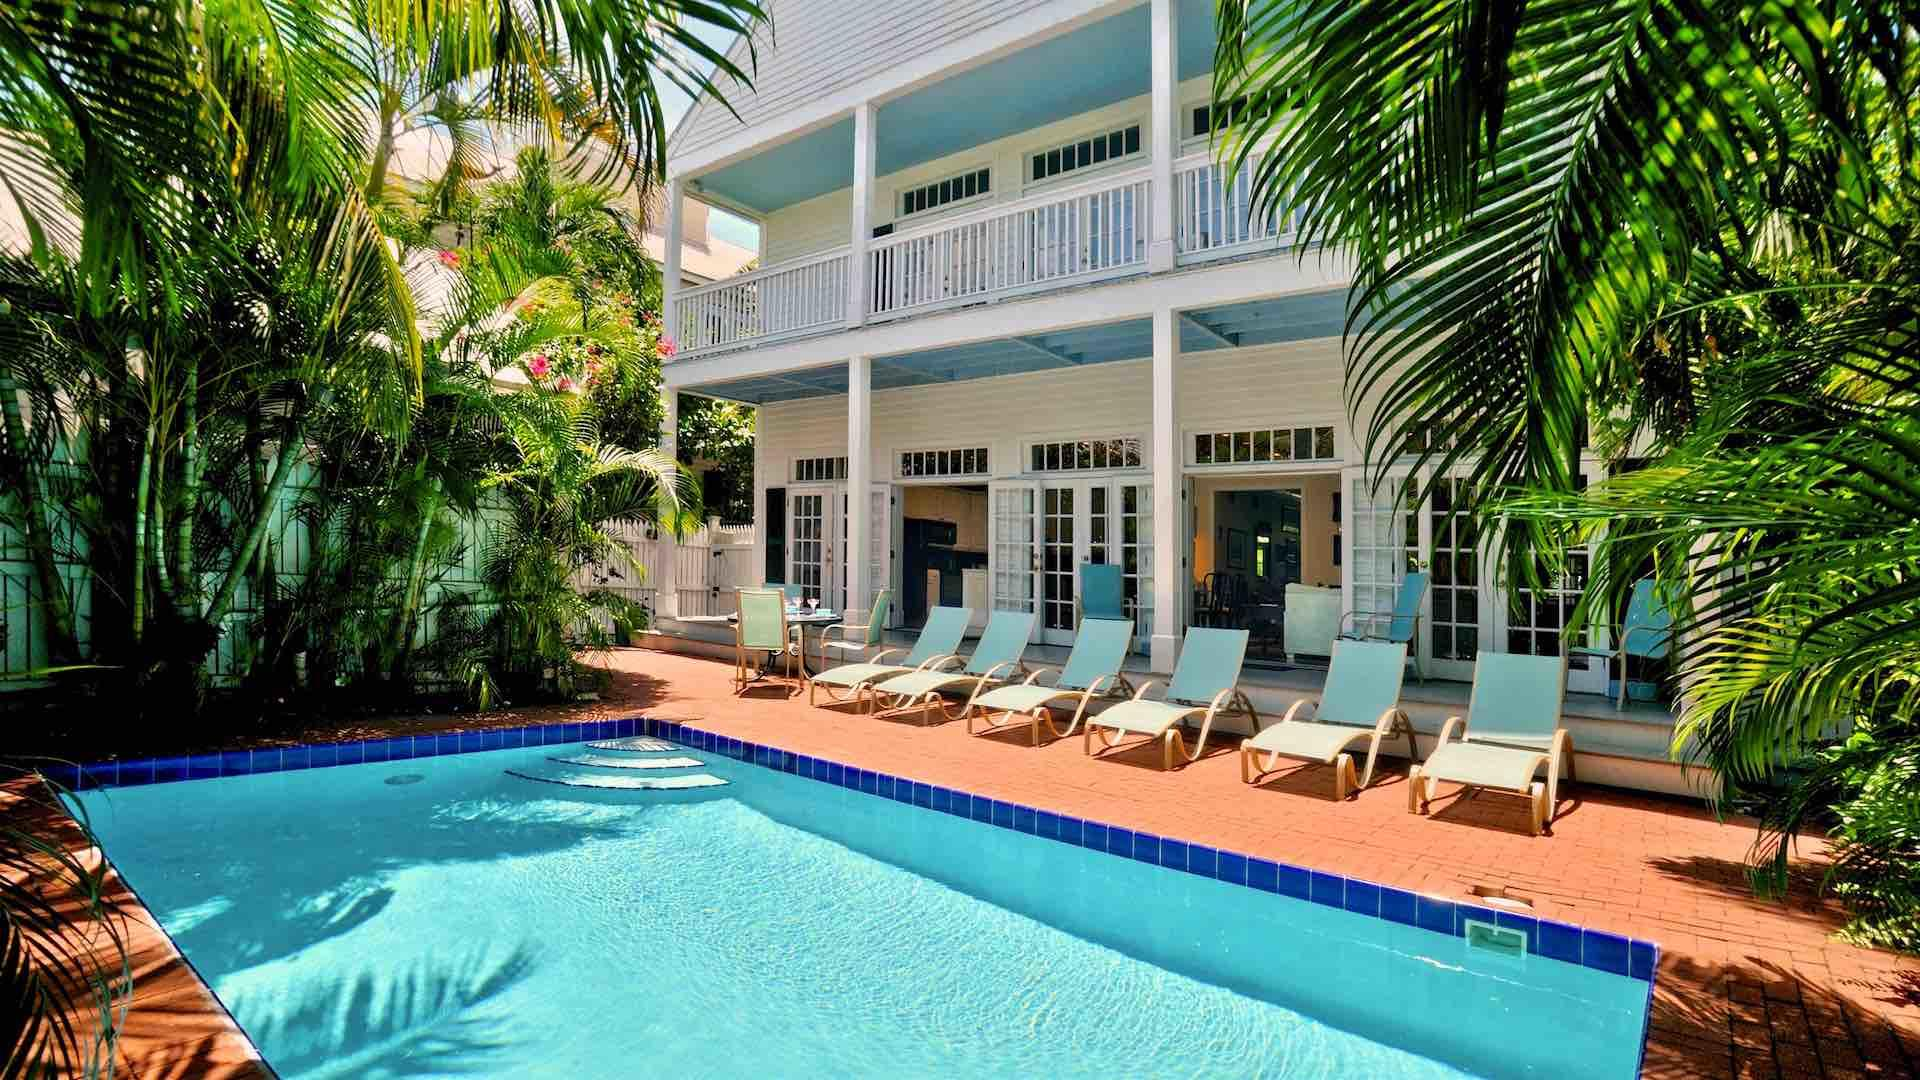 Truman Annex weekly vacation home with 5 bedrooms and large pool and patio in Key West